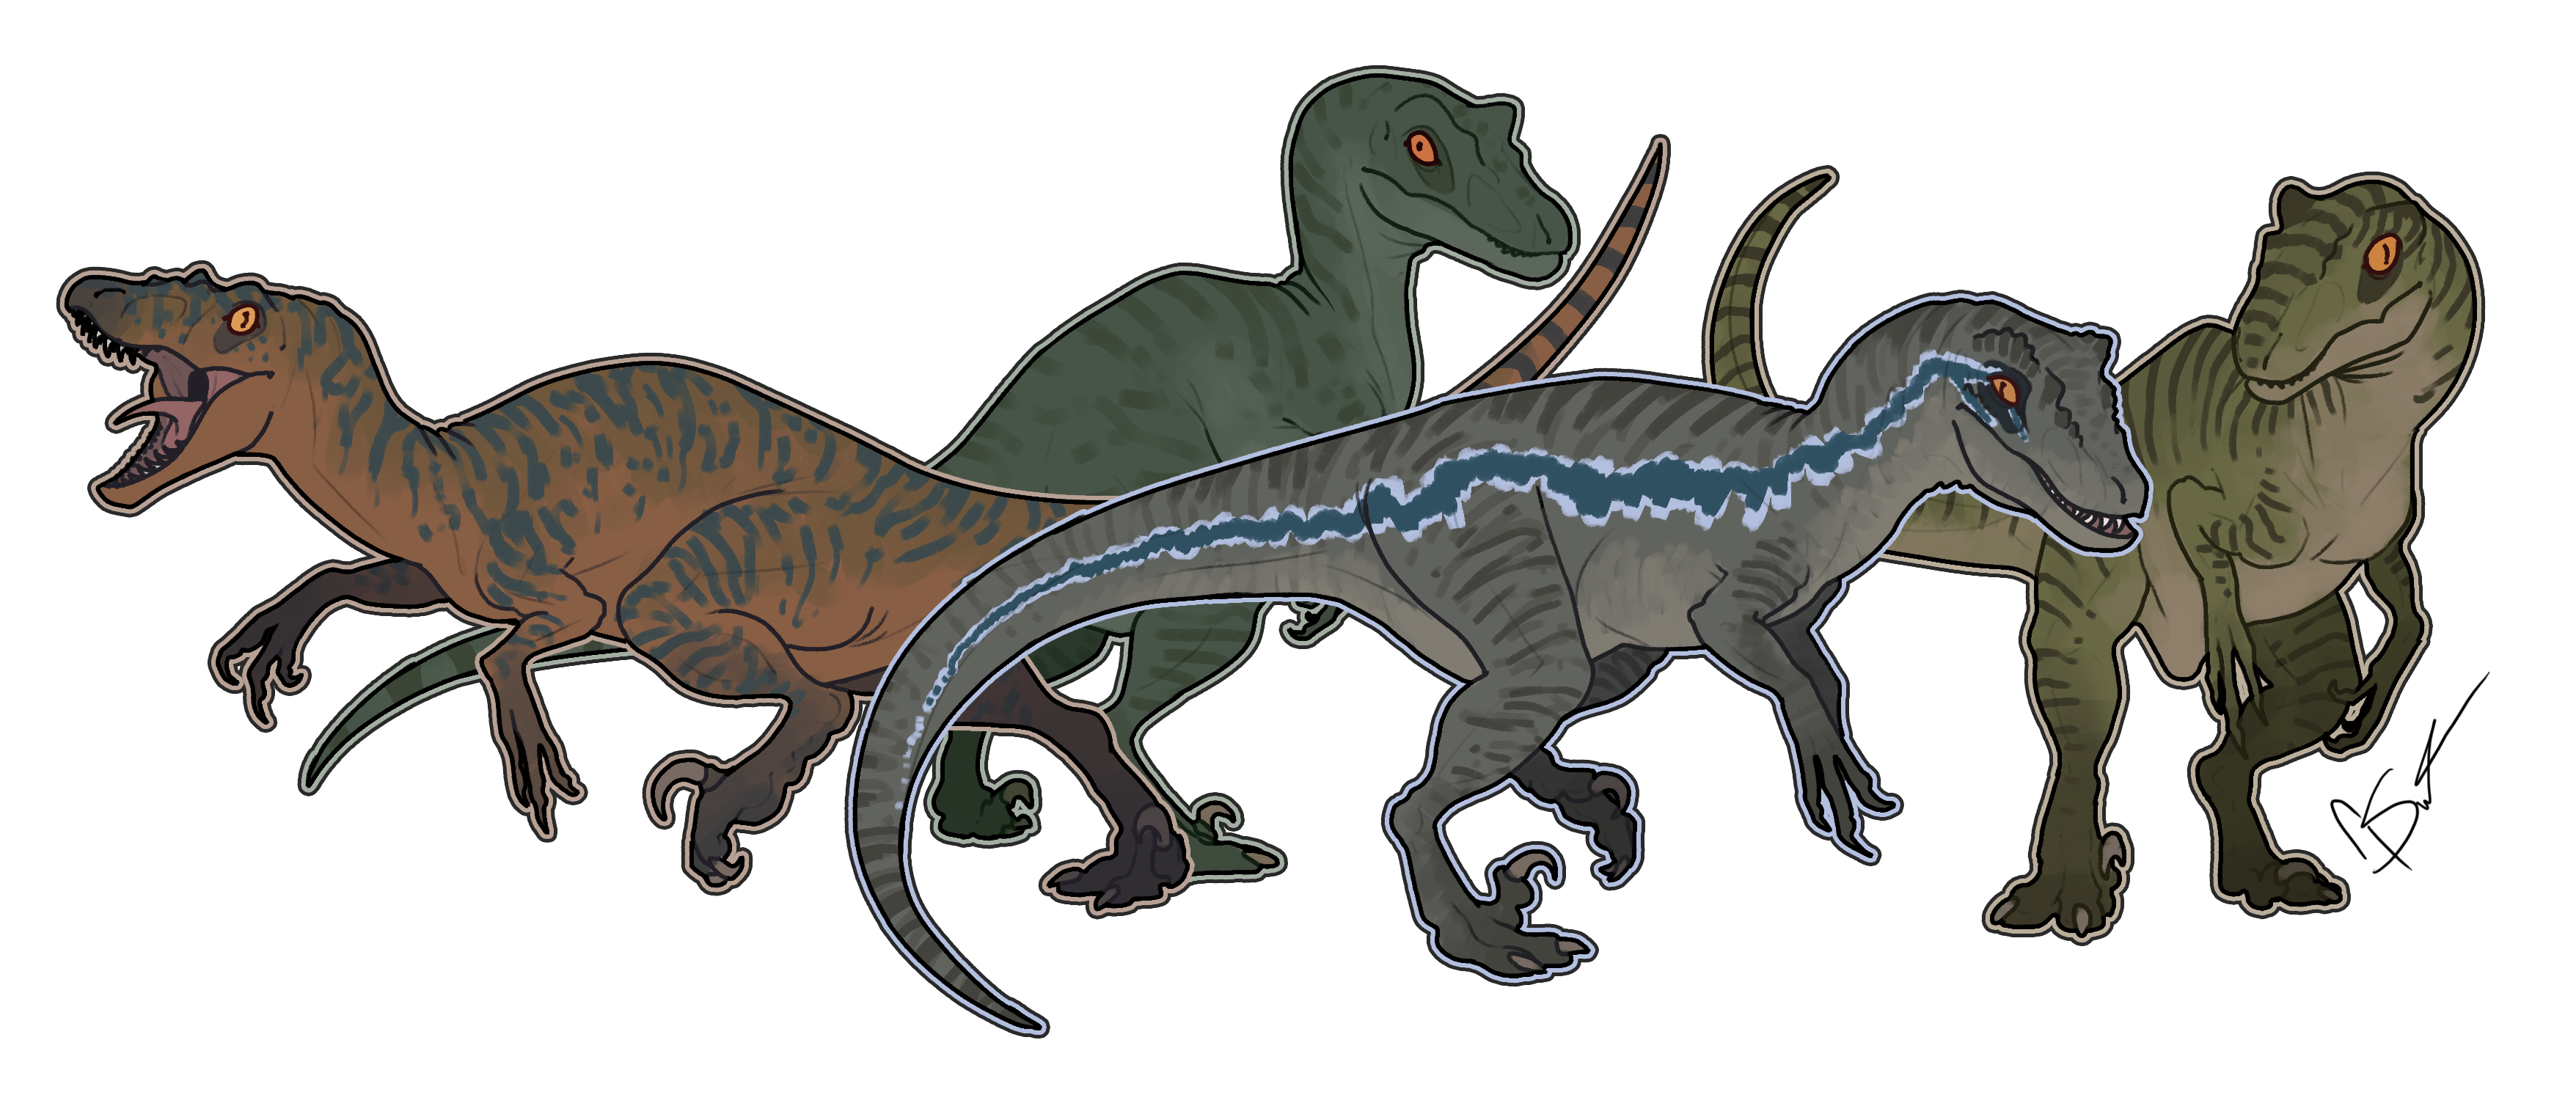 Jurassic park raptor png. I drew the world